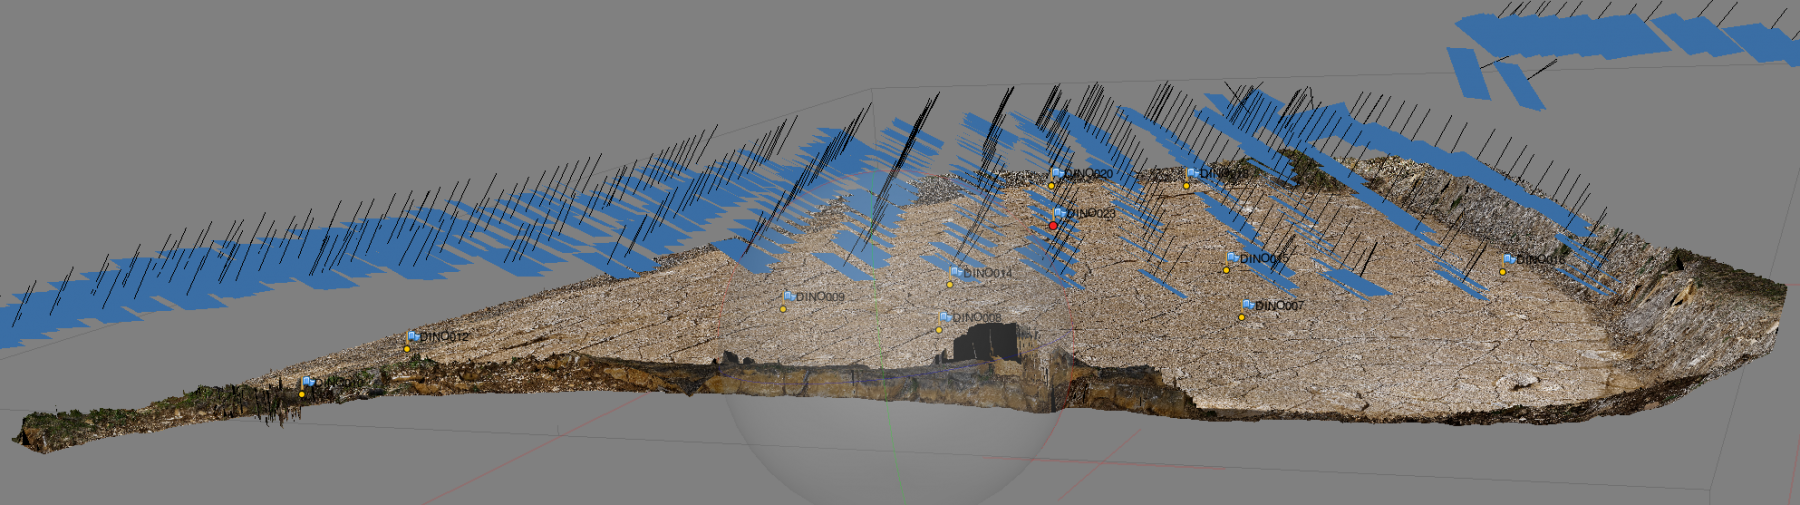 Image showing the camera positions in relation to the limestone surface - in section